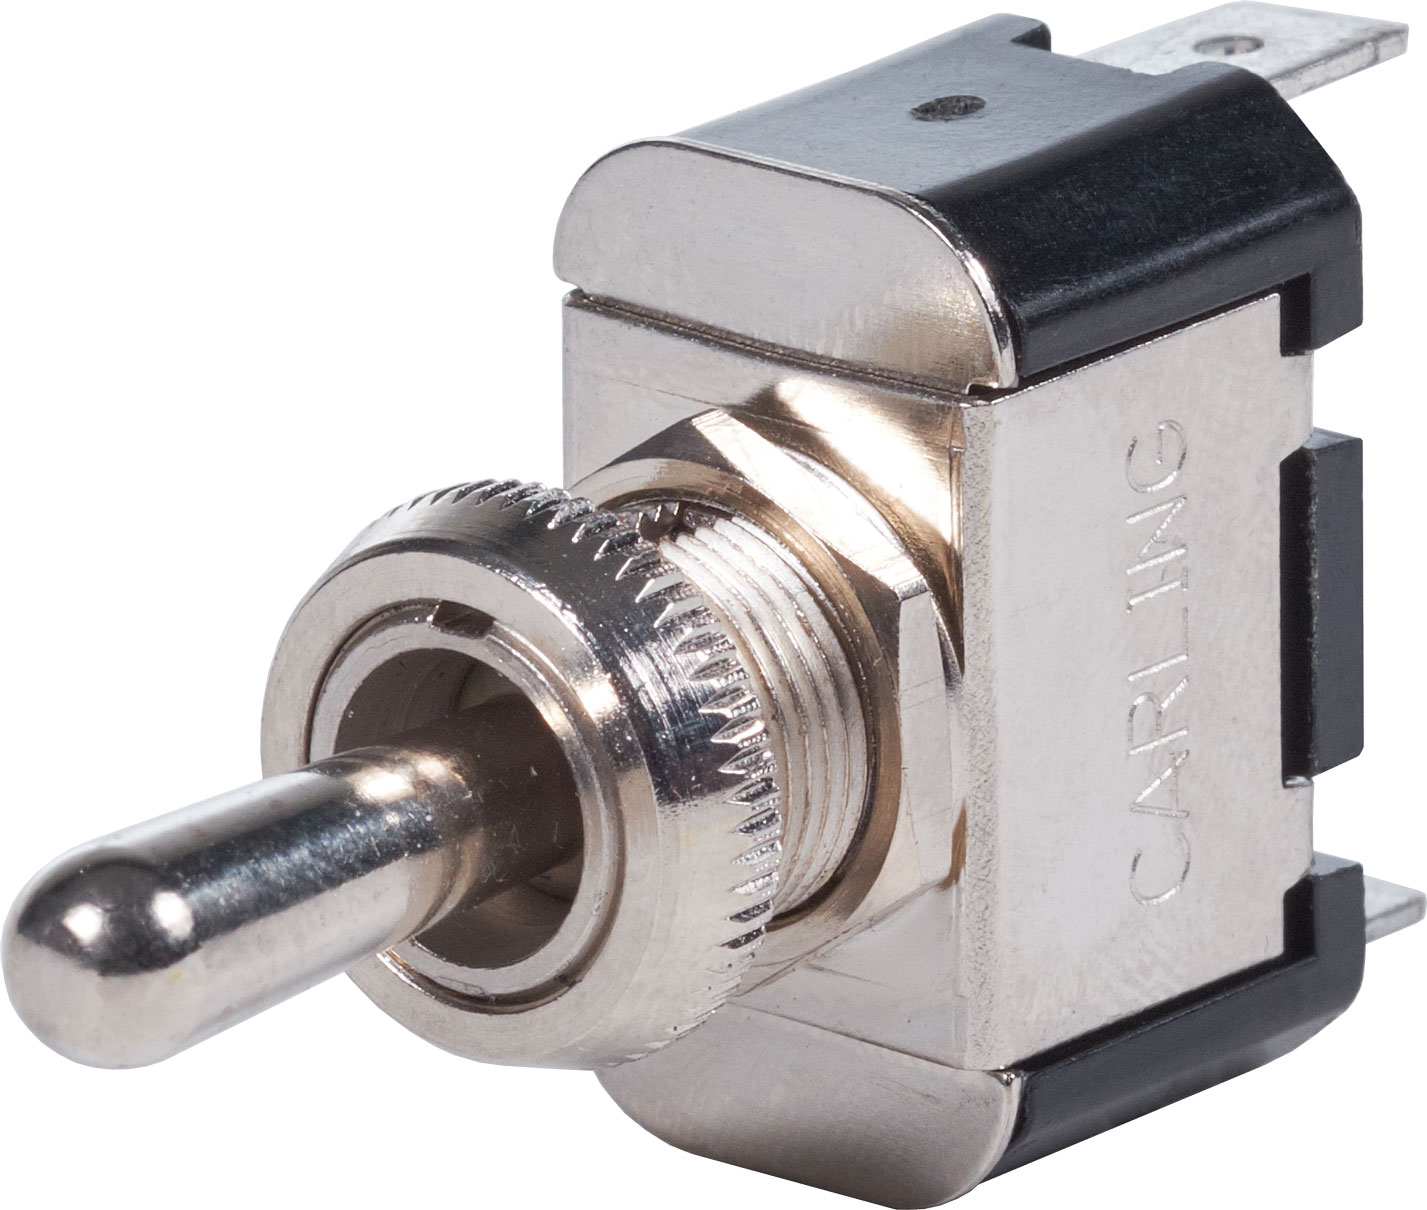 Weatherdeck Toggle Switch Spdt On Off Blue Sea Systems 20 Amp Road Rocker Wiring Diagram Product Image